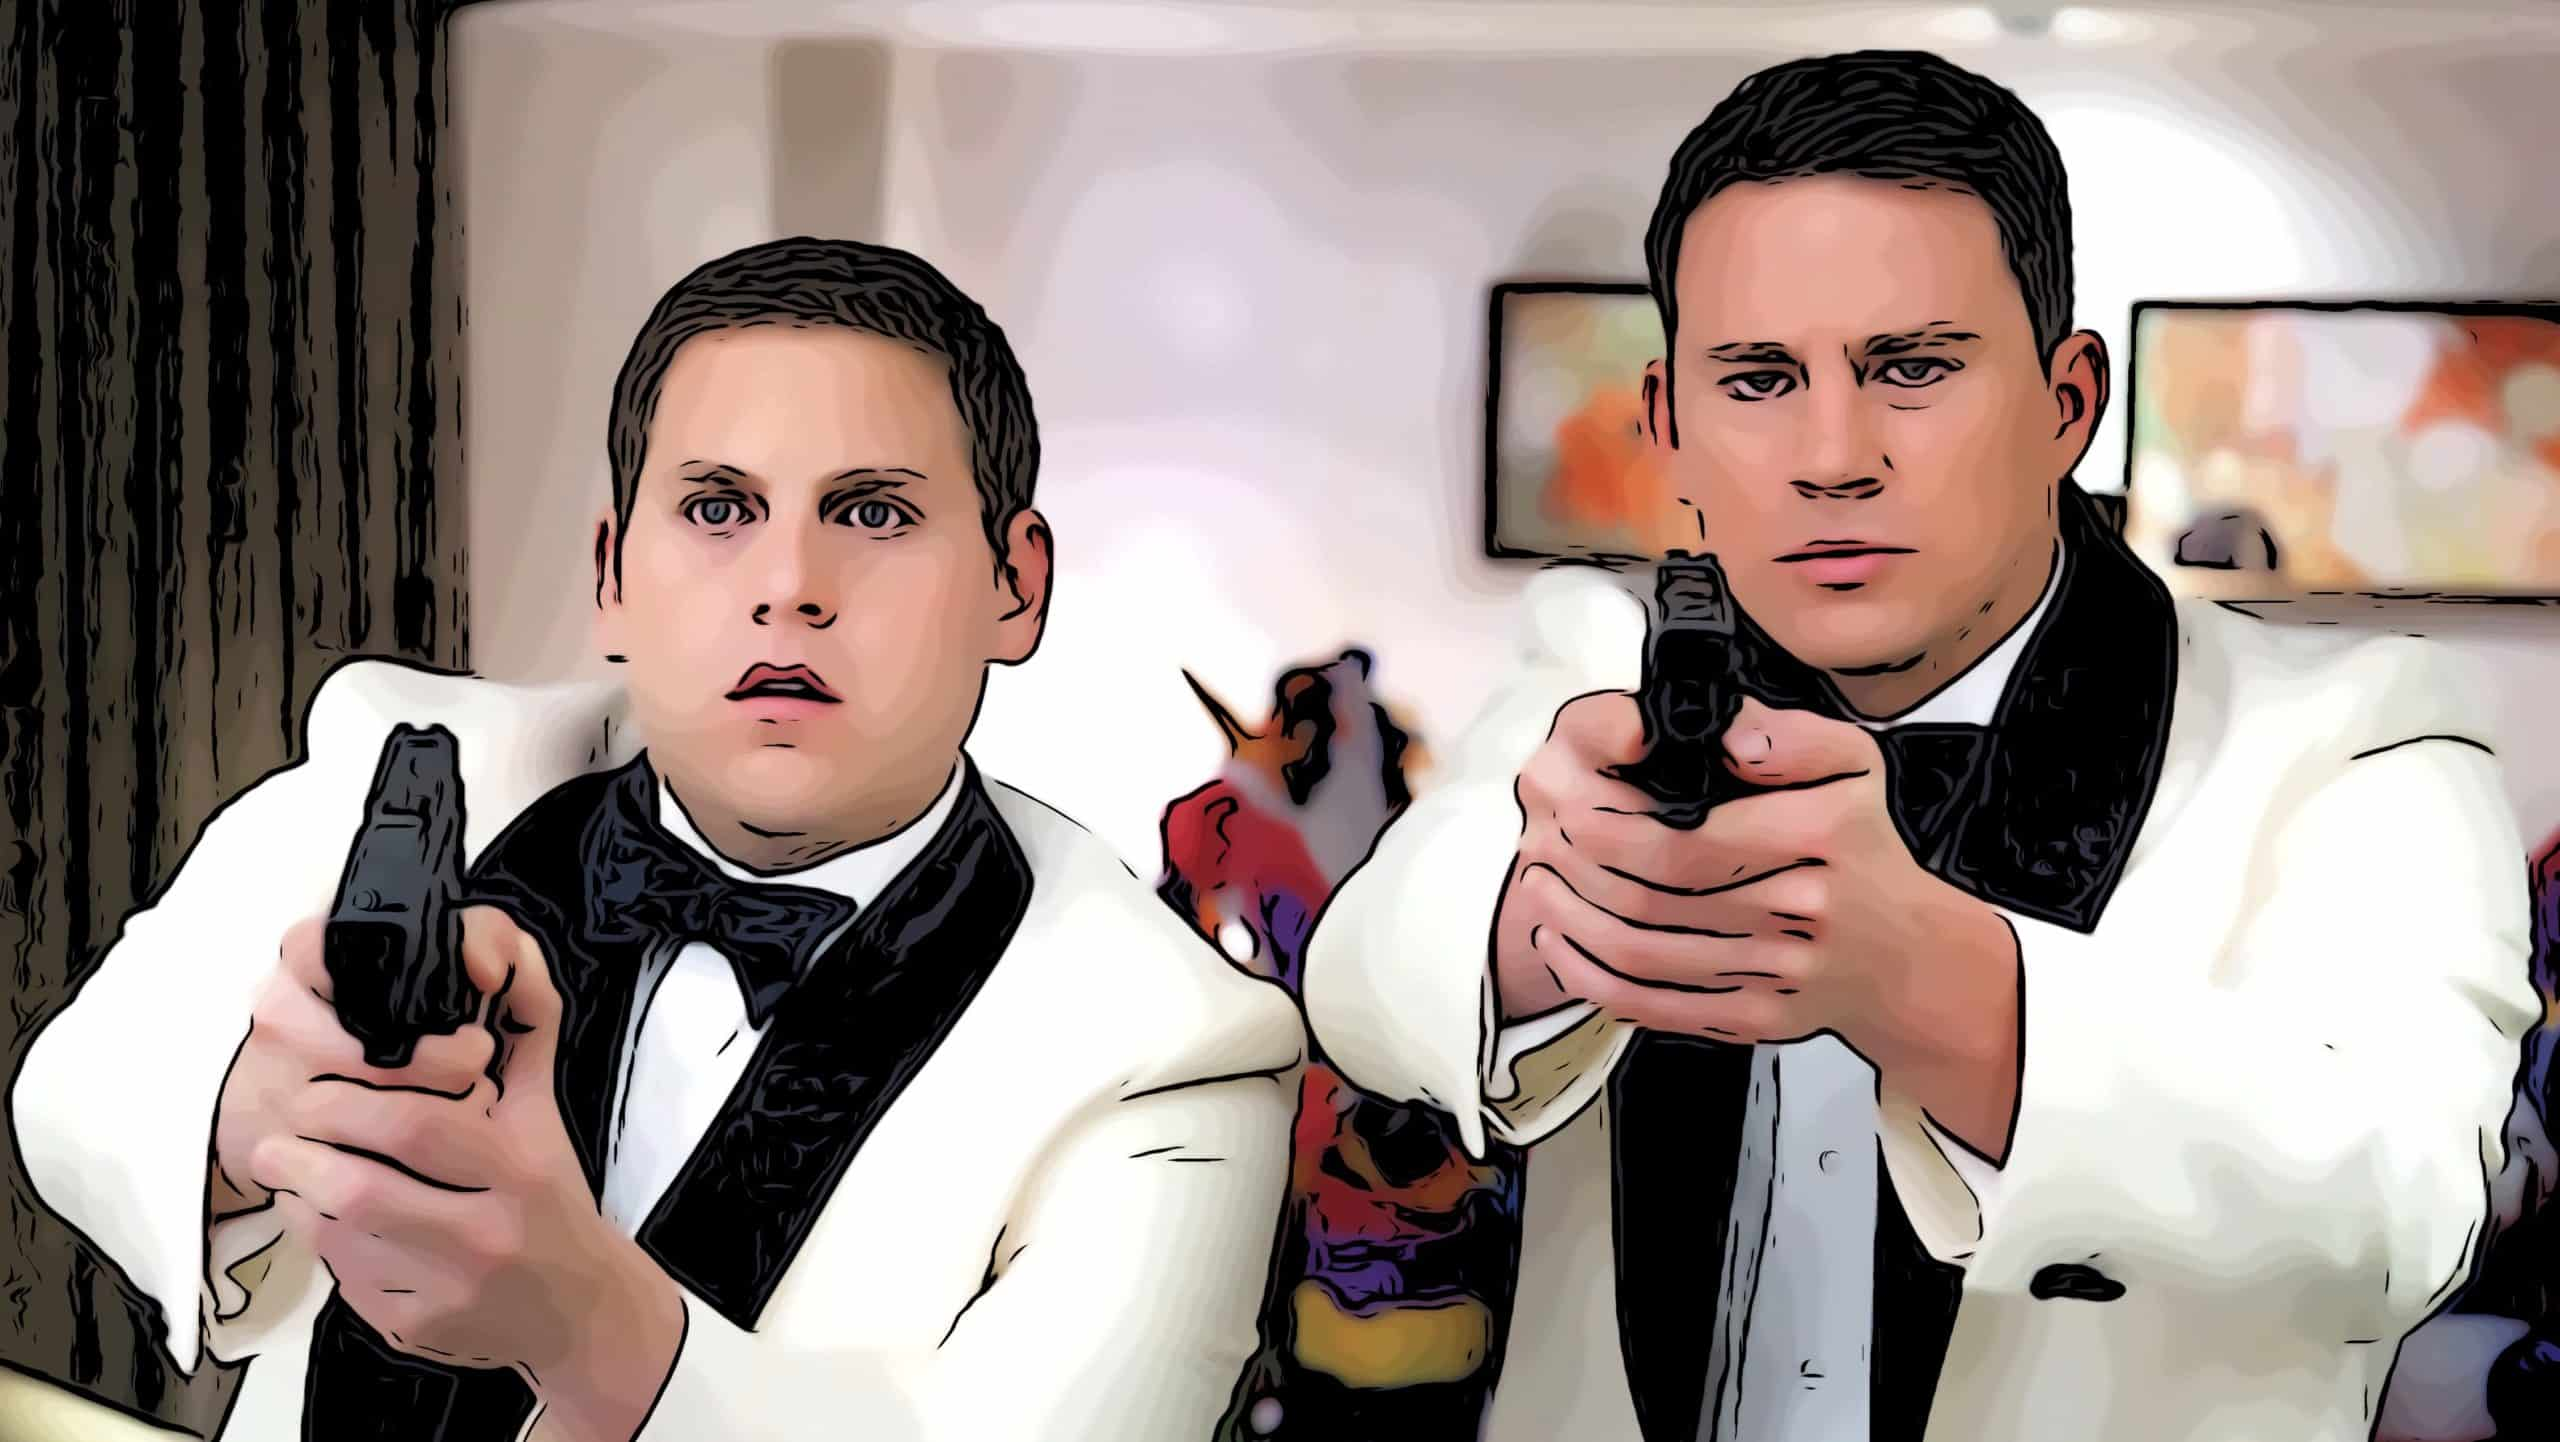 Scene from 21 Jump Street for movies like Bad Boys post.